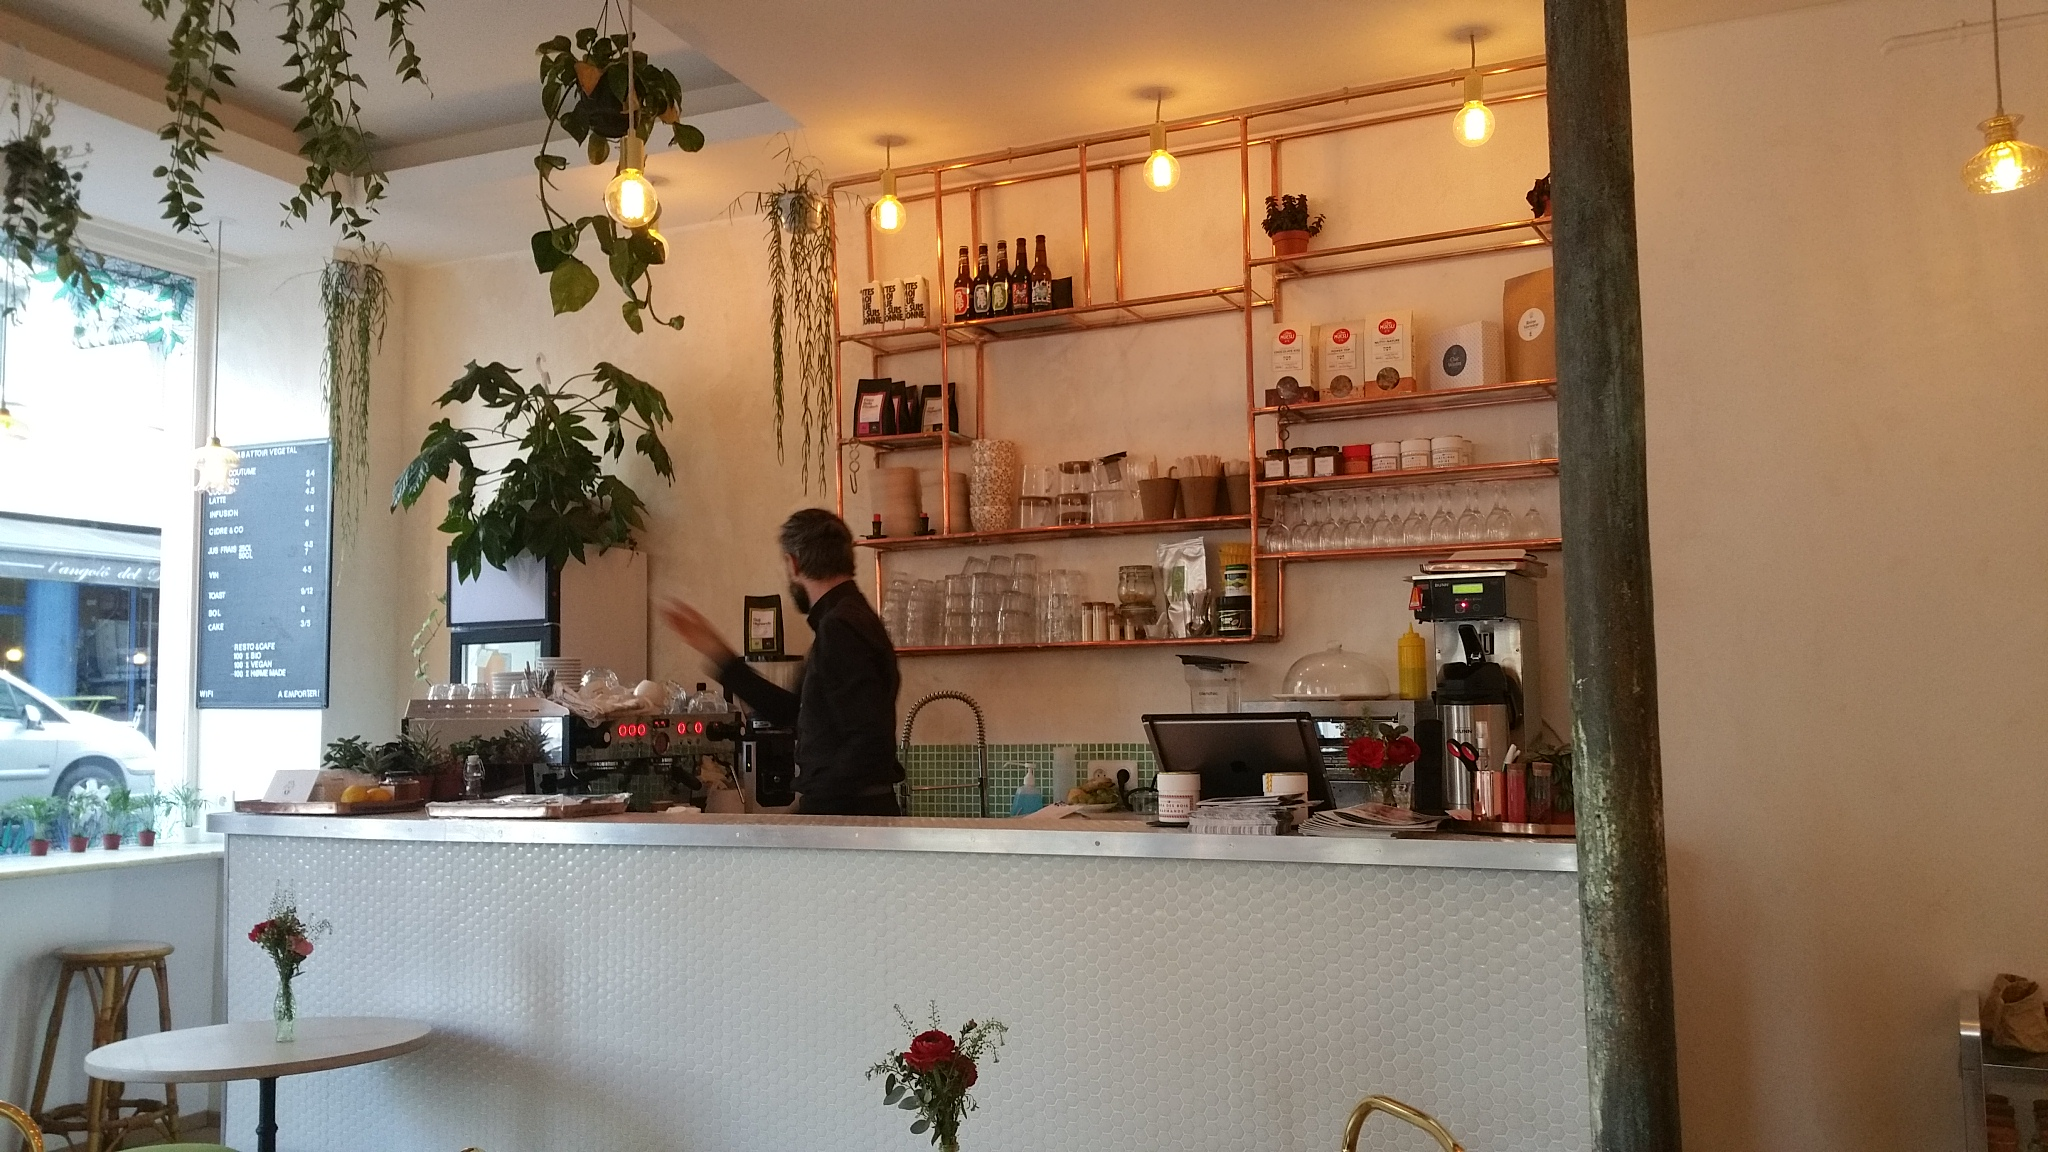 vegan-in-paris-restaurant-abbatoir-vegetal